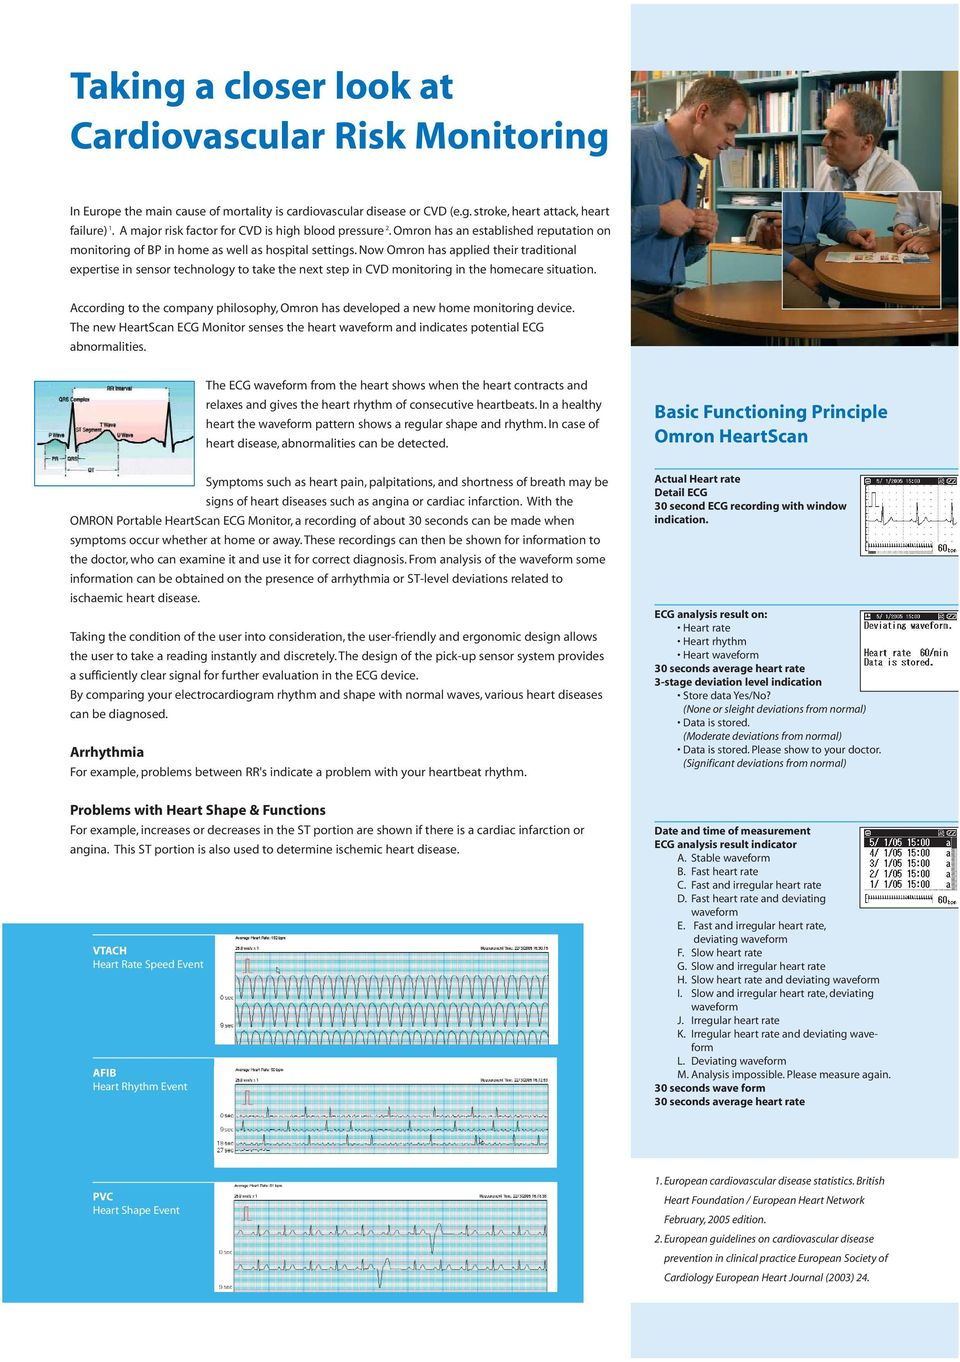 Now Omron has applied their traditional expertise in sensor technology to take the next step in CVD monitoring in the homecare situation.